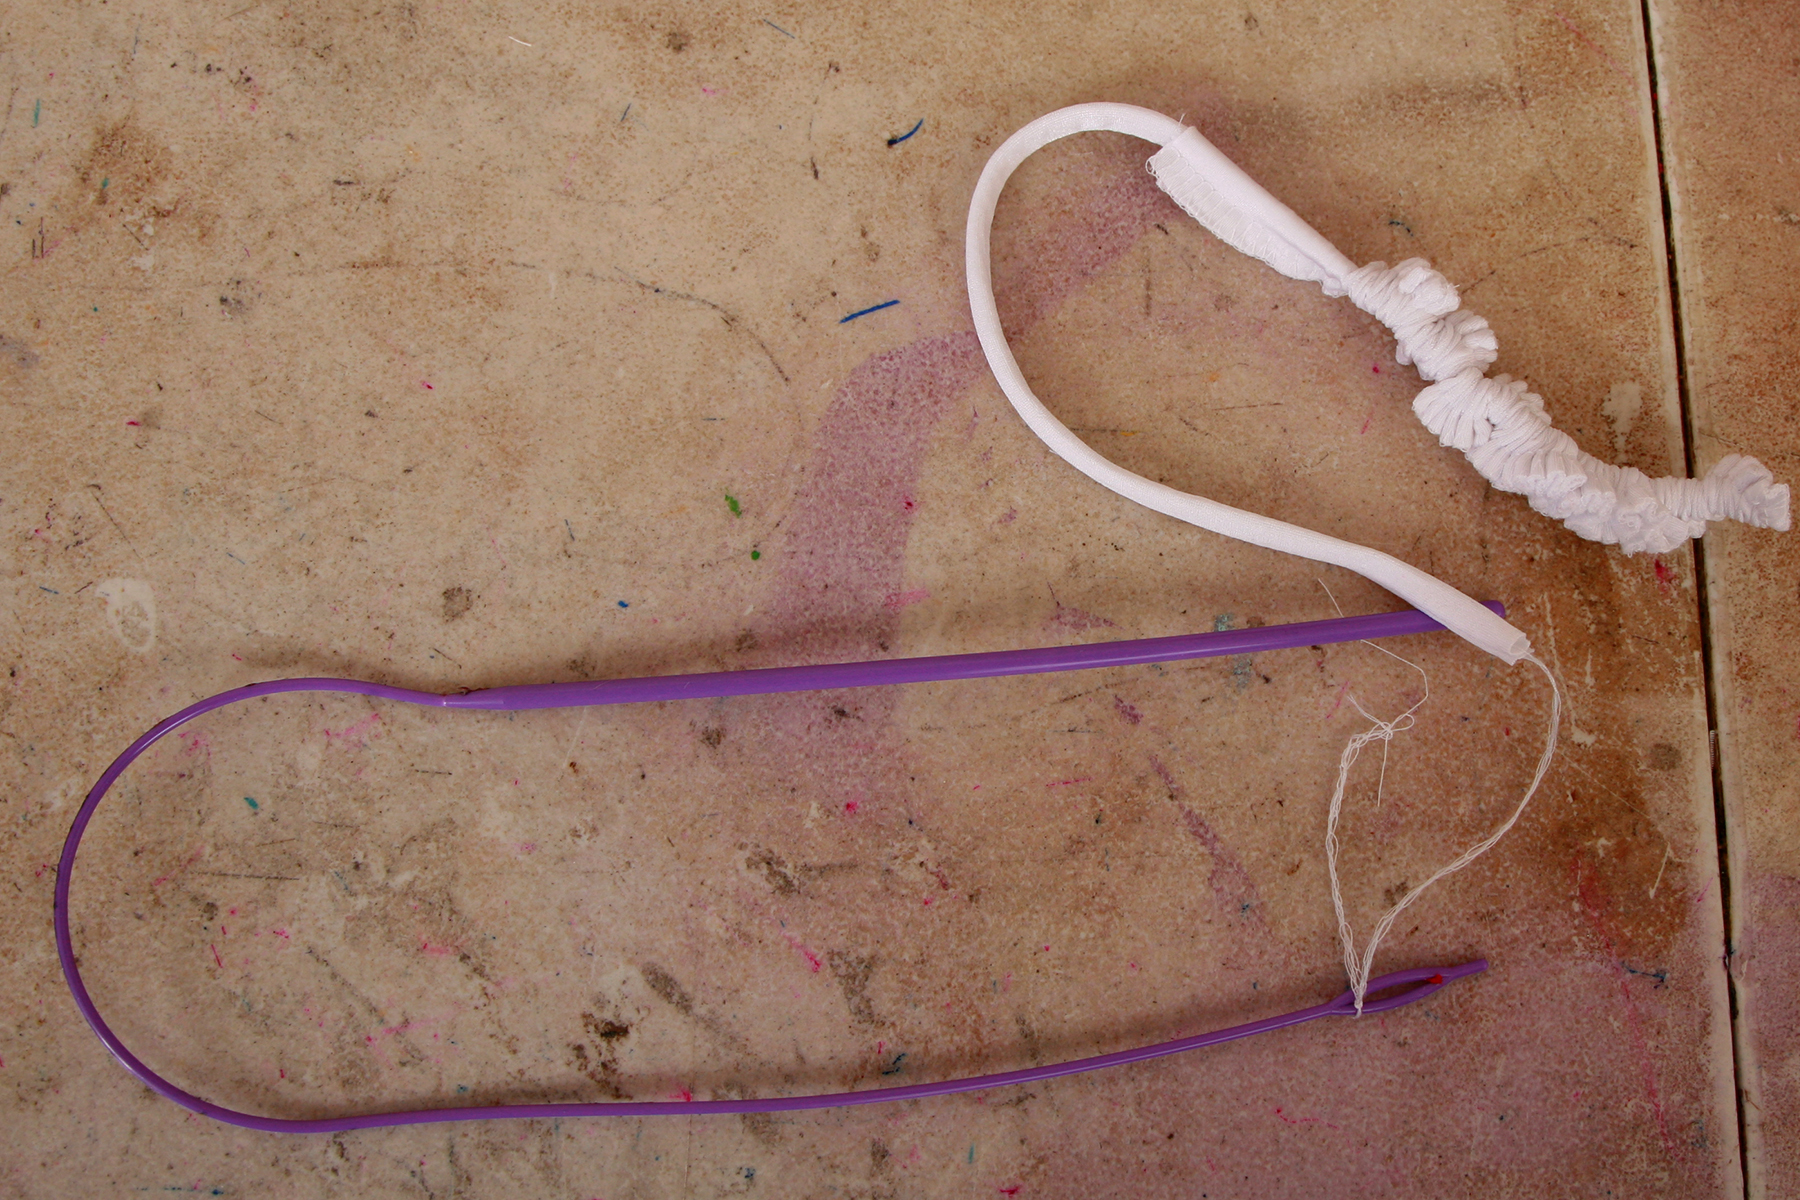 A long white bikini string is being pulled off the end of a purple cord threader.